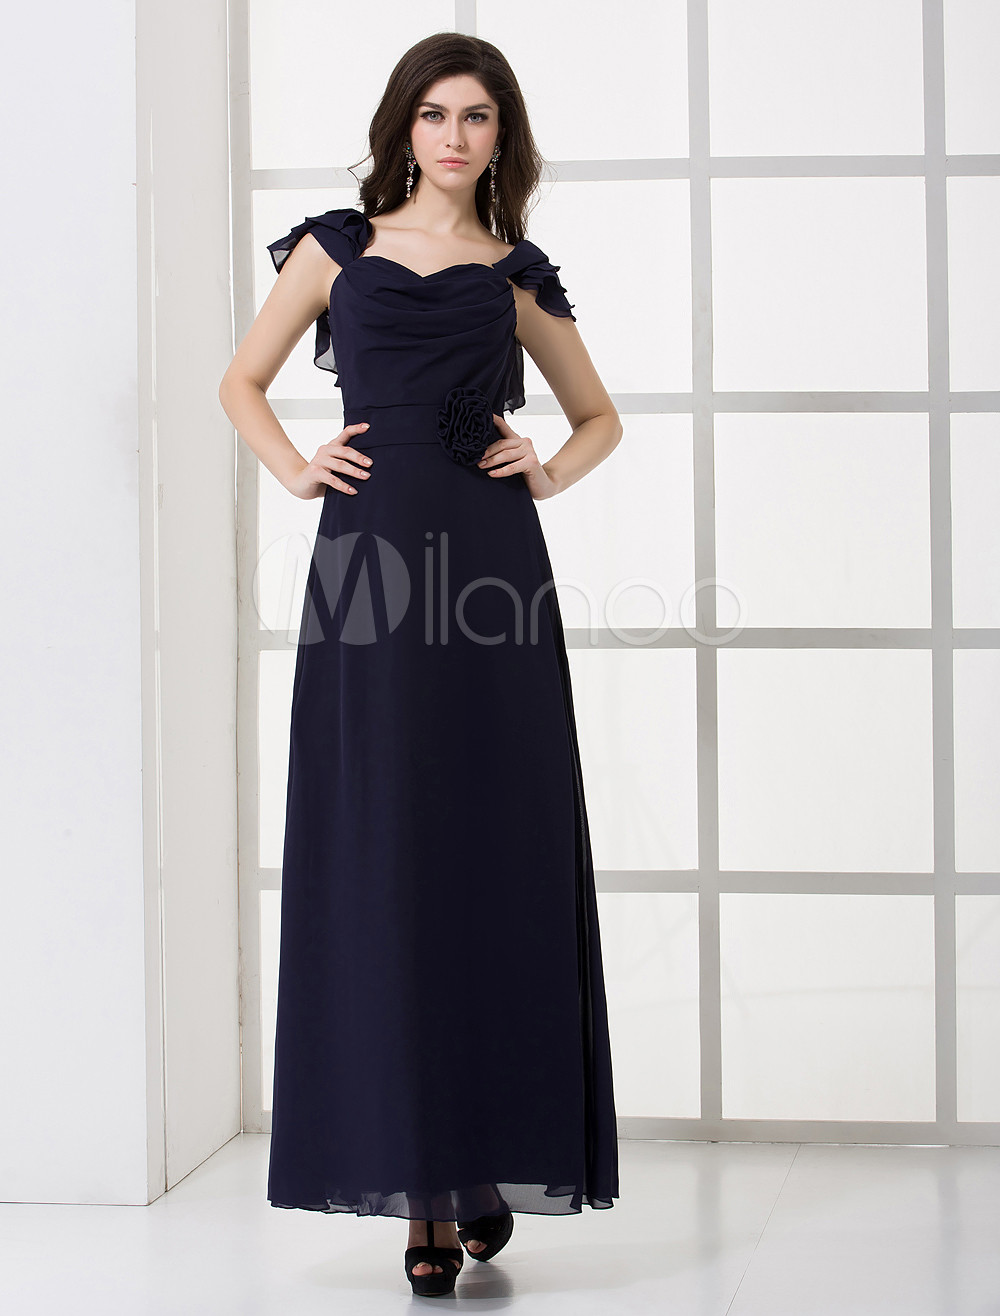 Beautiful Royal Blue Chiffon Flower Sweetheart Neck Floor-Length Bridesmaid Dress For Wedding